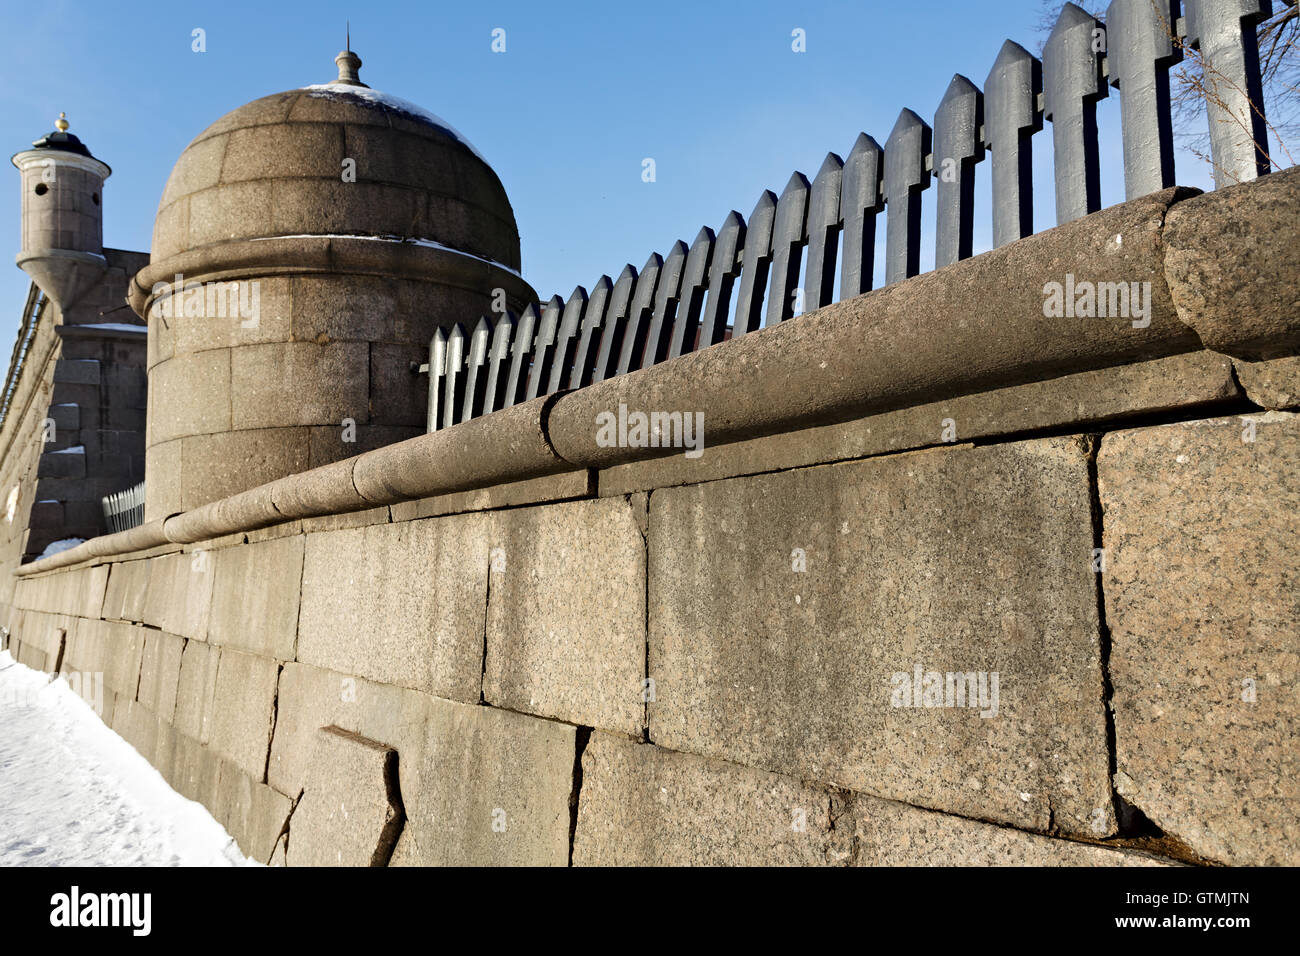 Granite Wall of Peter and Paul Fortress Stock Photo